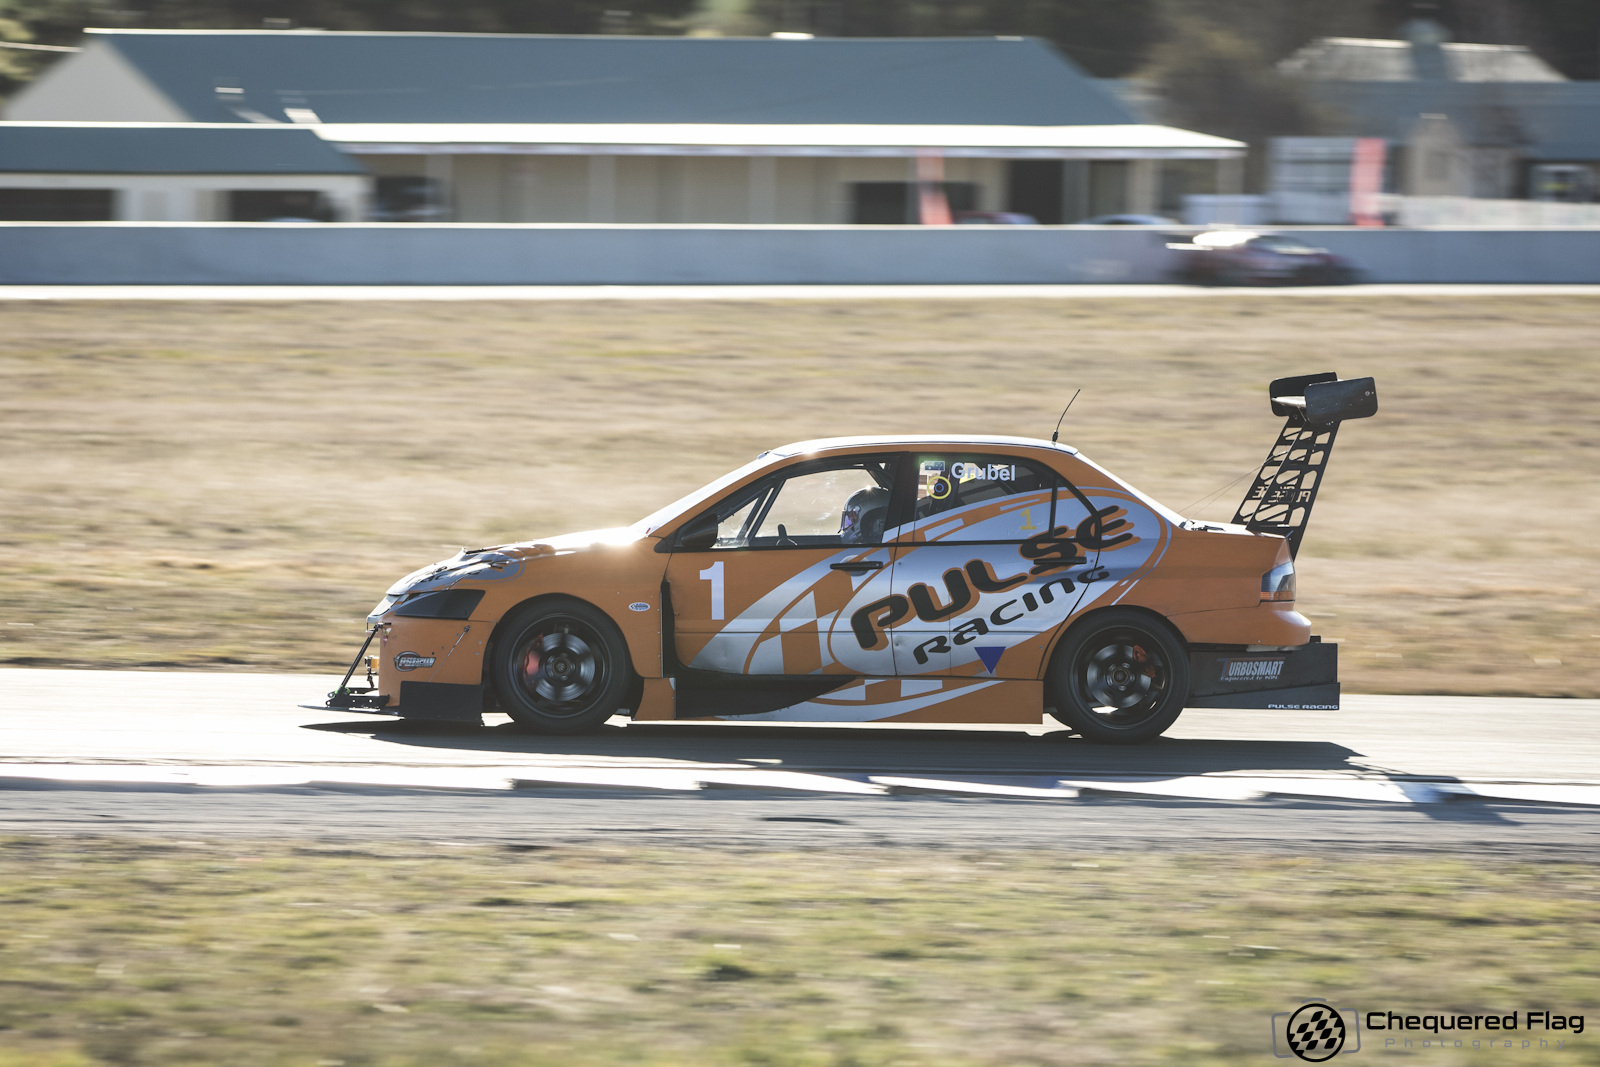 04 - Aus Time Attack - Chequered Flag